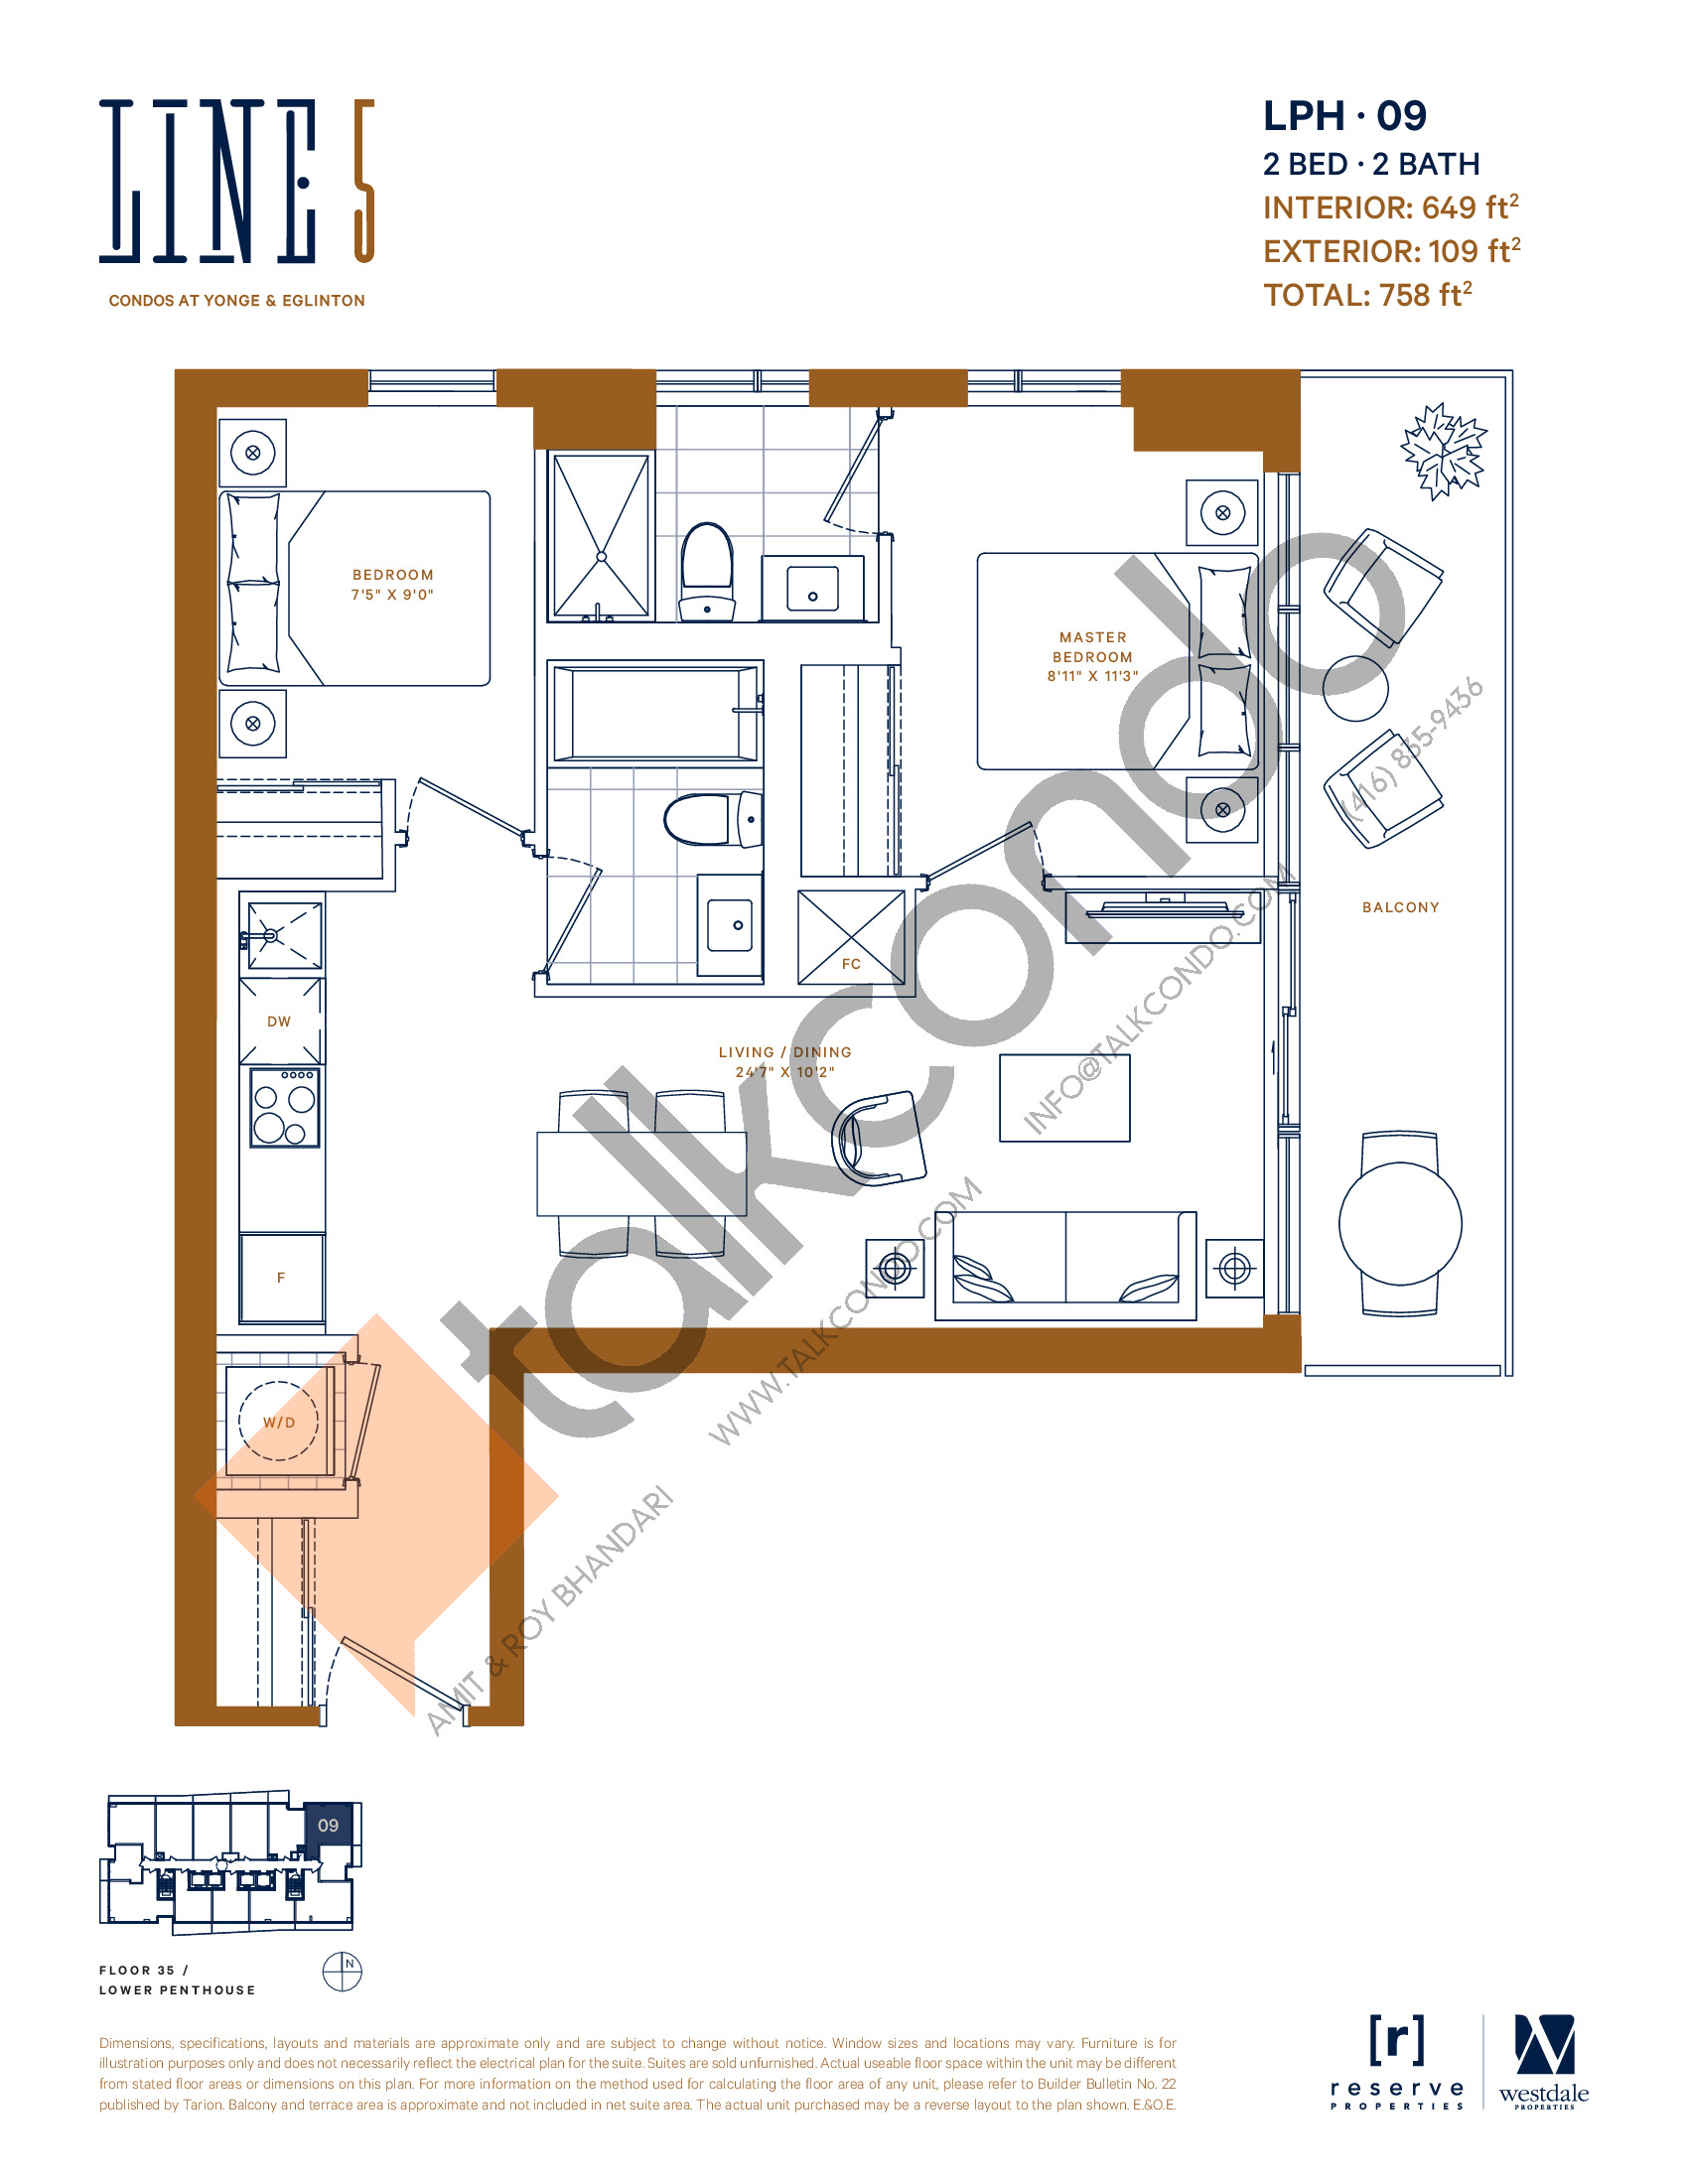 LPH-09 Floor Plan at Line 5 South Tower Condos - 649 sq.ft